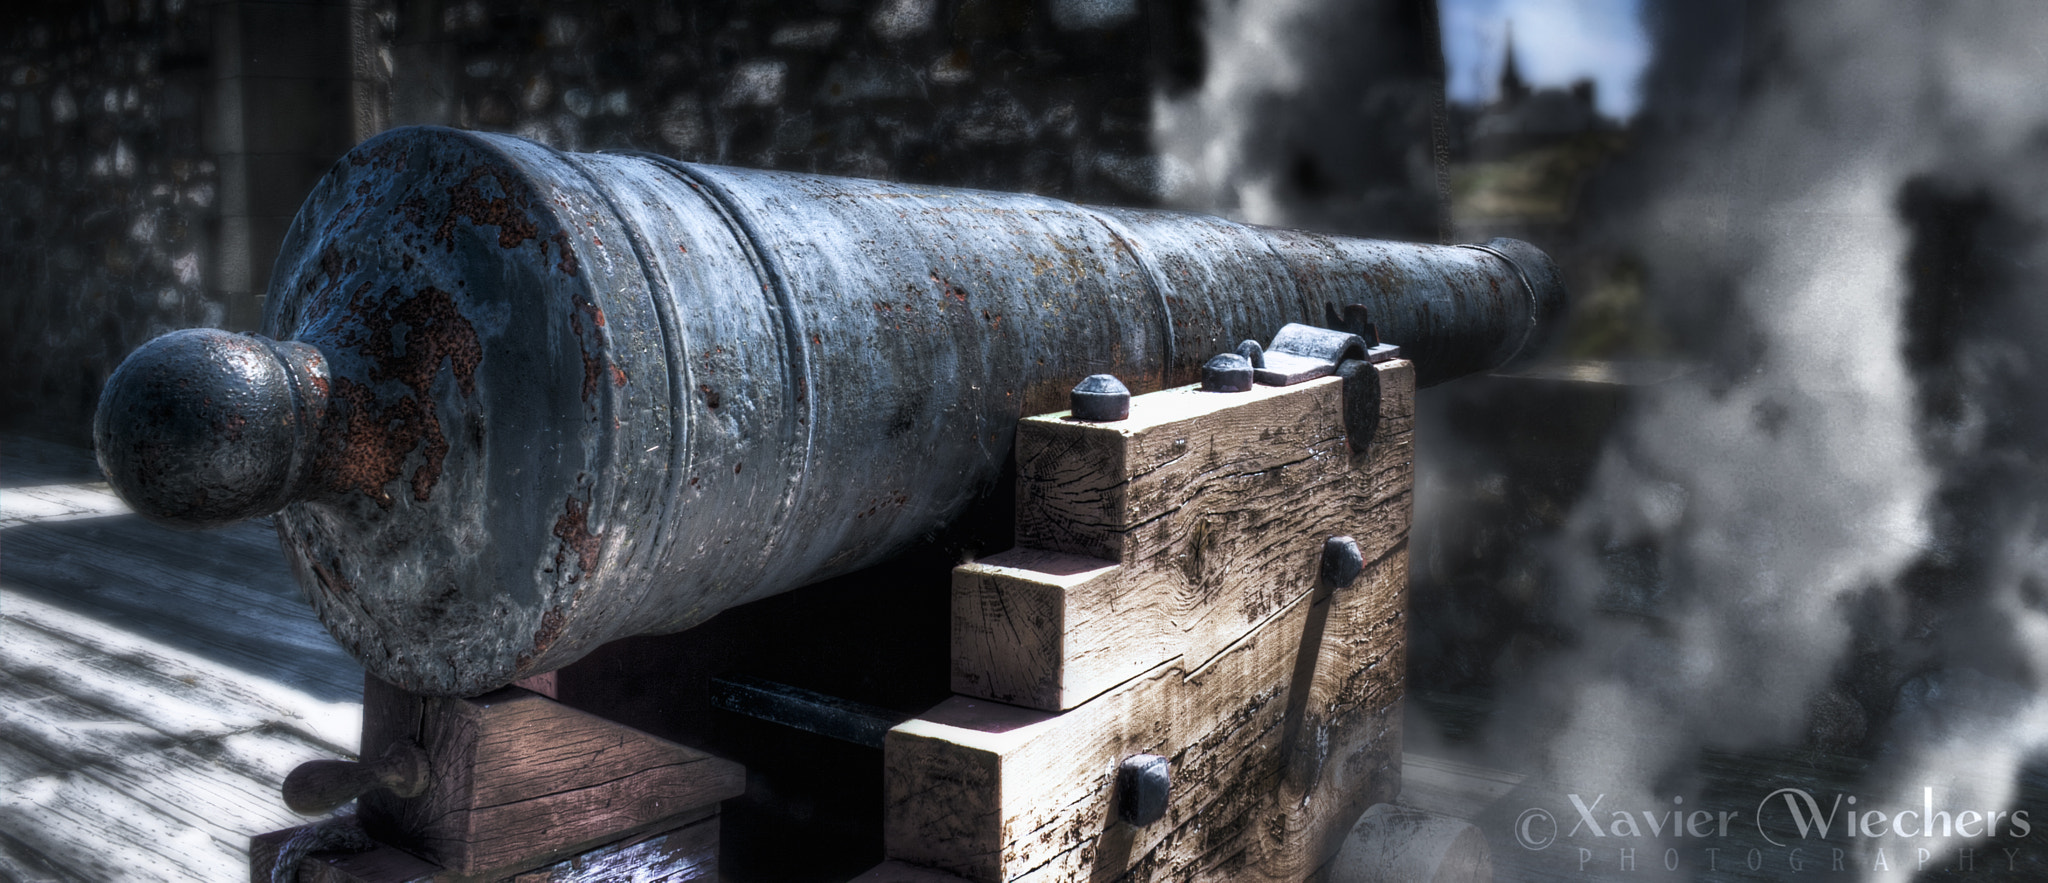 Photograph Louisbourg Cannon by Xavier Wiechers on 500px